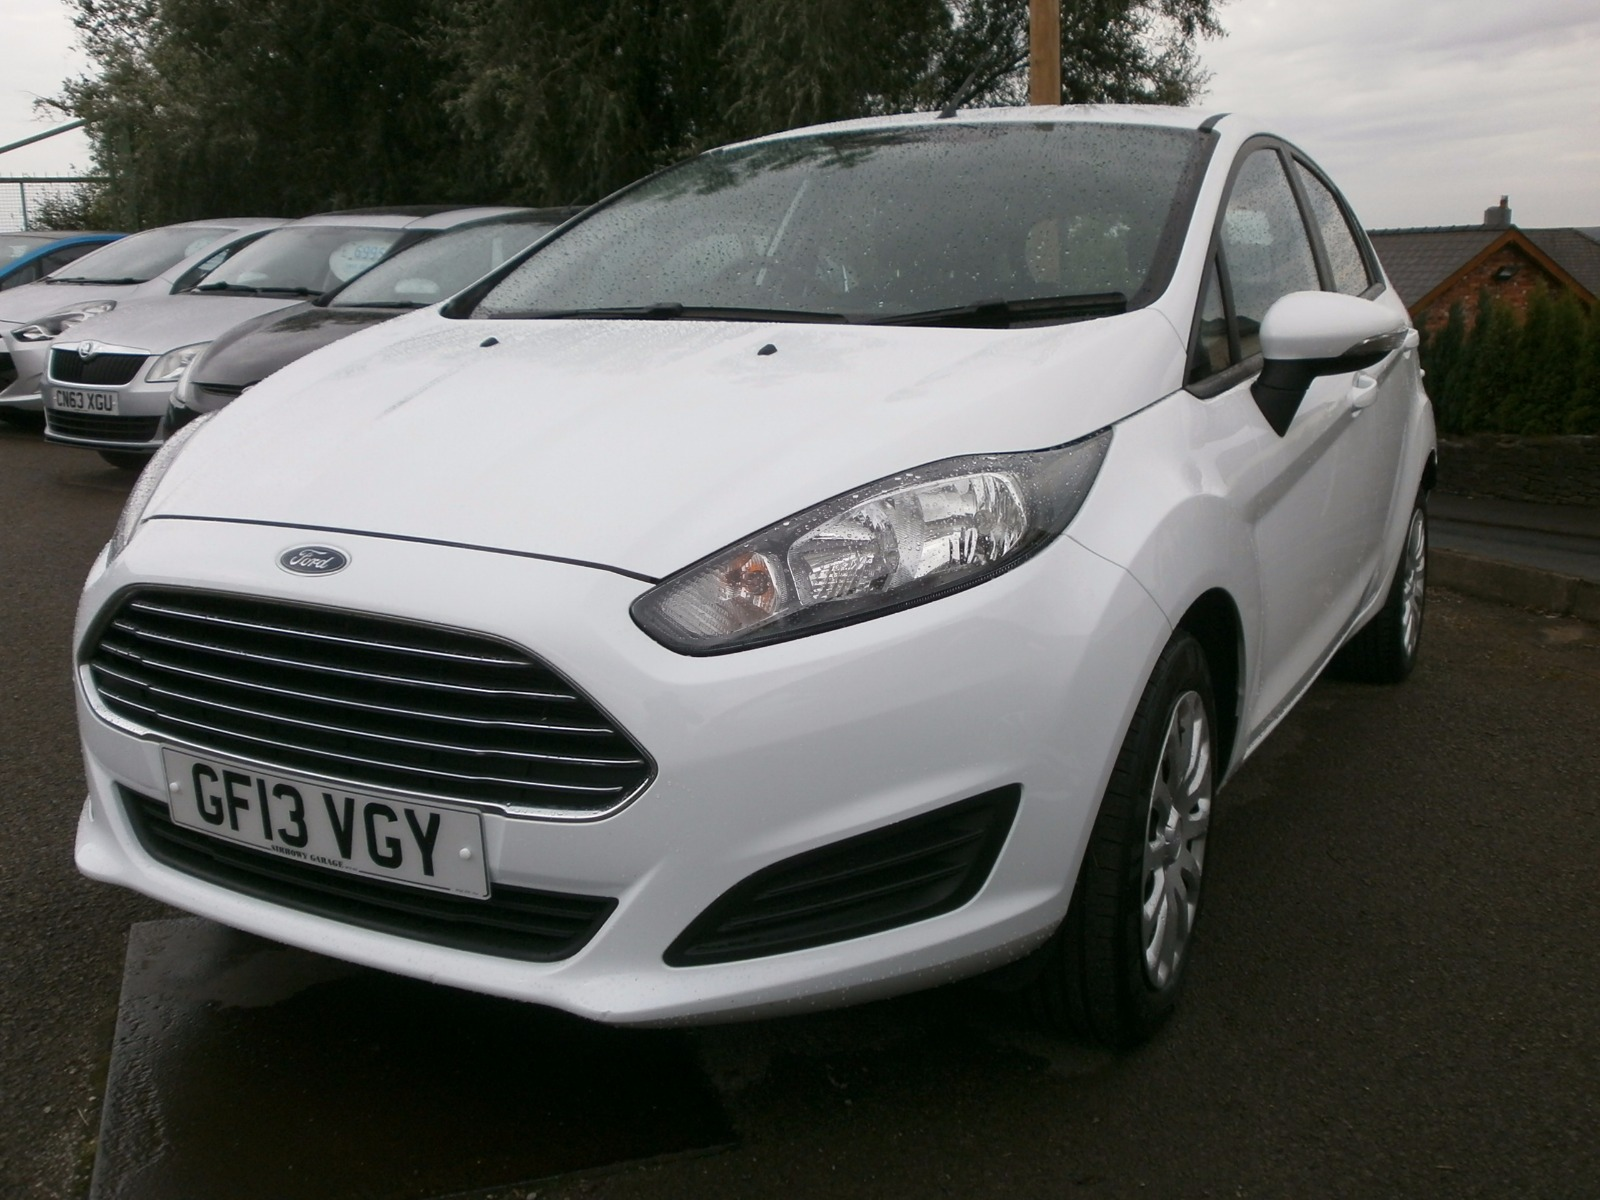 Sirhowy garage ford fiesta 1 5 tdci style for Garage ford fiesta occasion